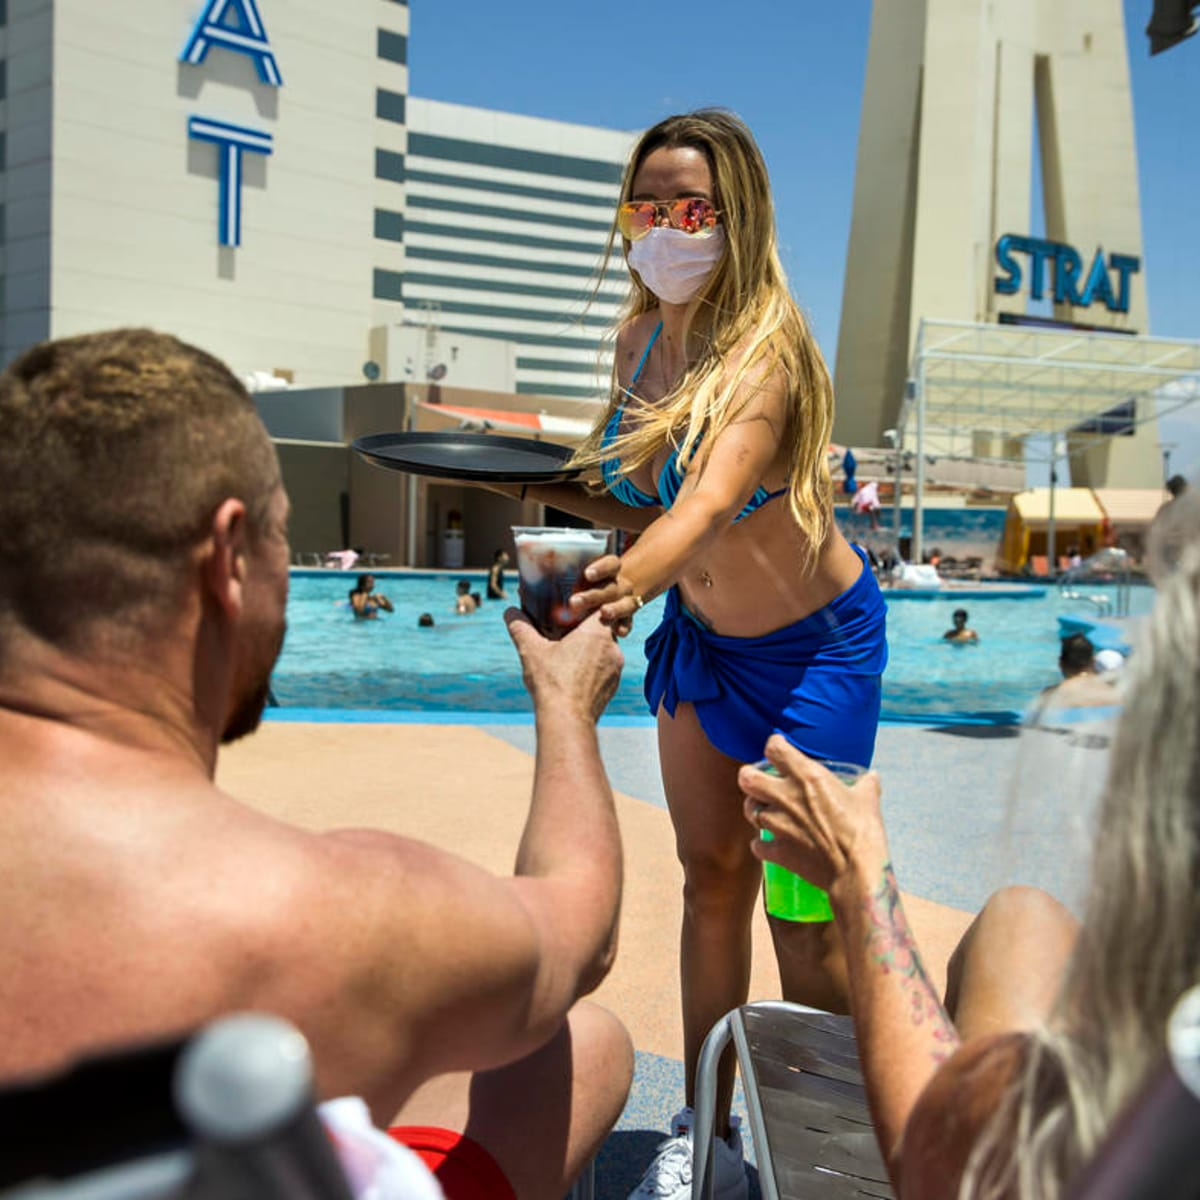 Pool Parties Have Officially Returned to Las Vegas - EDM.com - The Latest  Electronic Dance Music News, Reviews & Artists